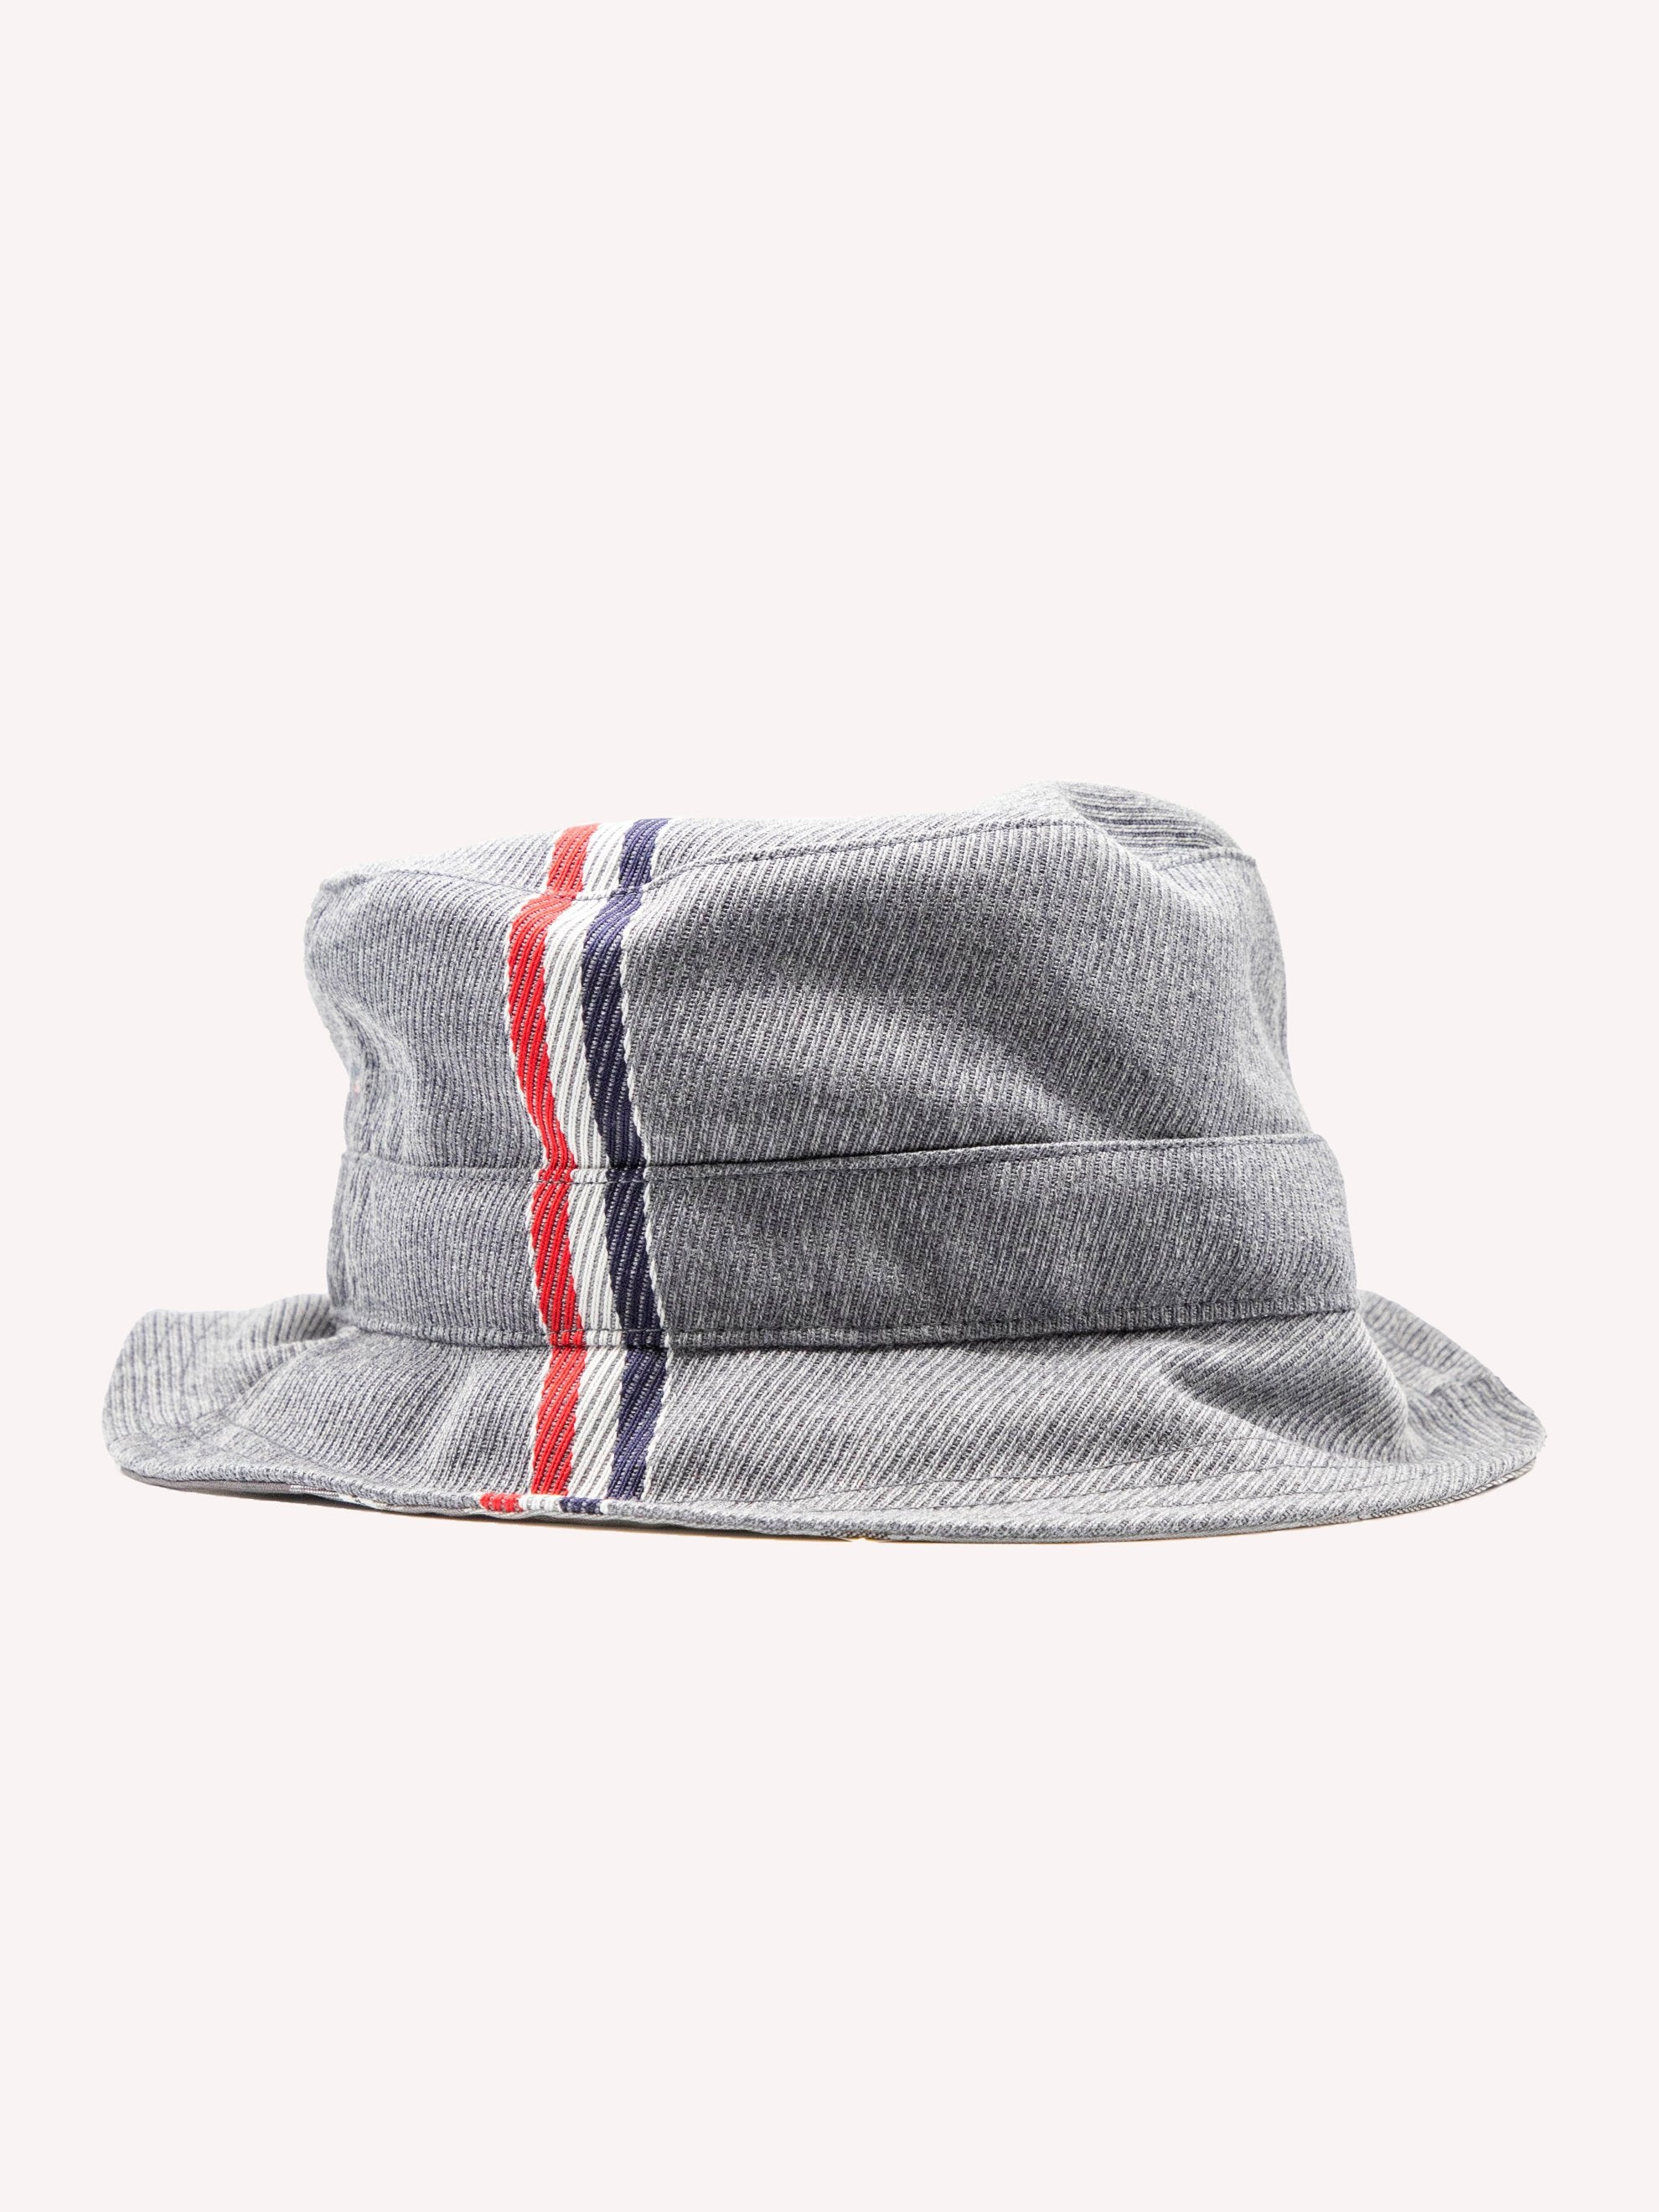 Med Grey Bucket Hat W/ Lining In Funmix In School Uniform Twill 1